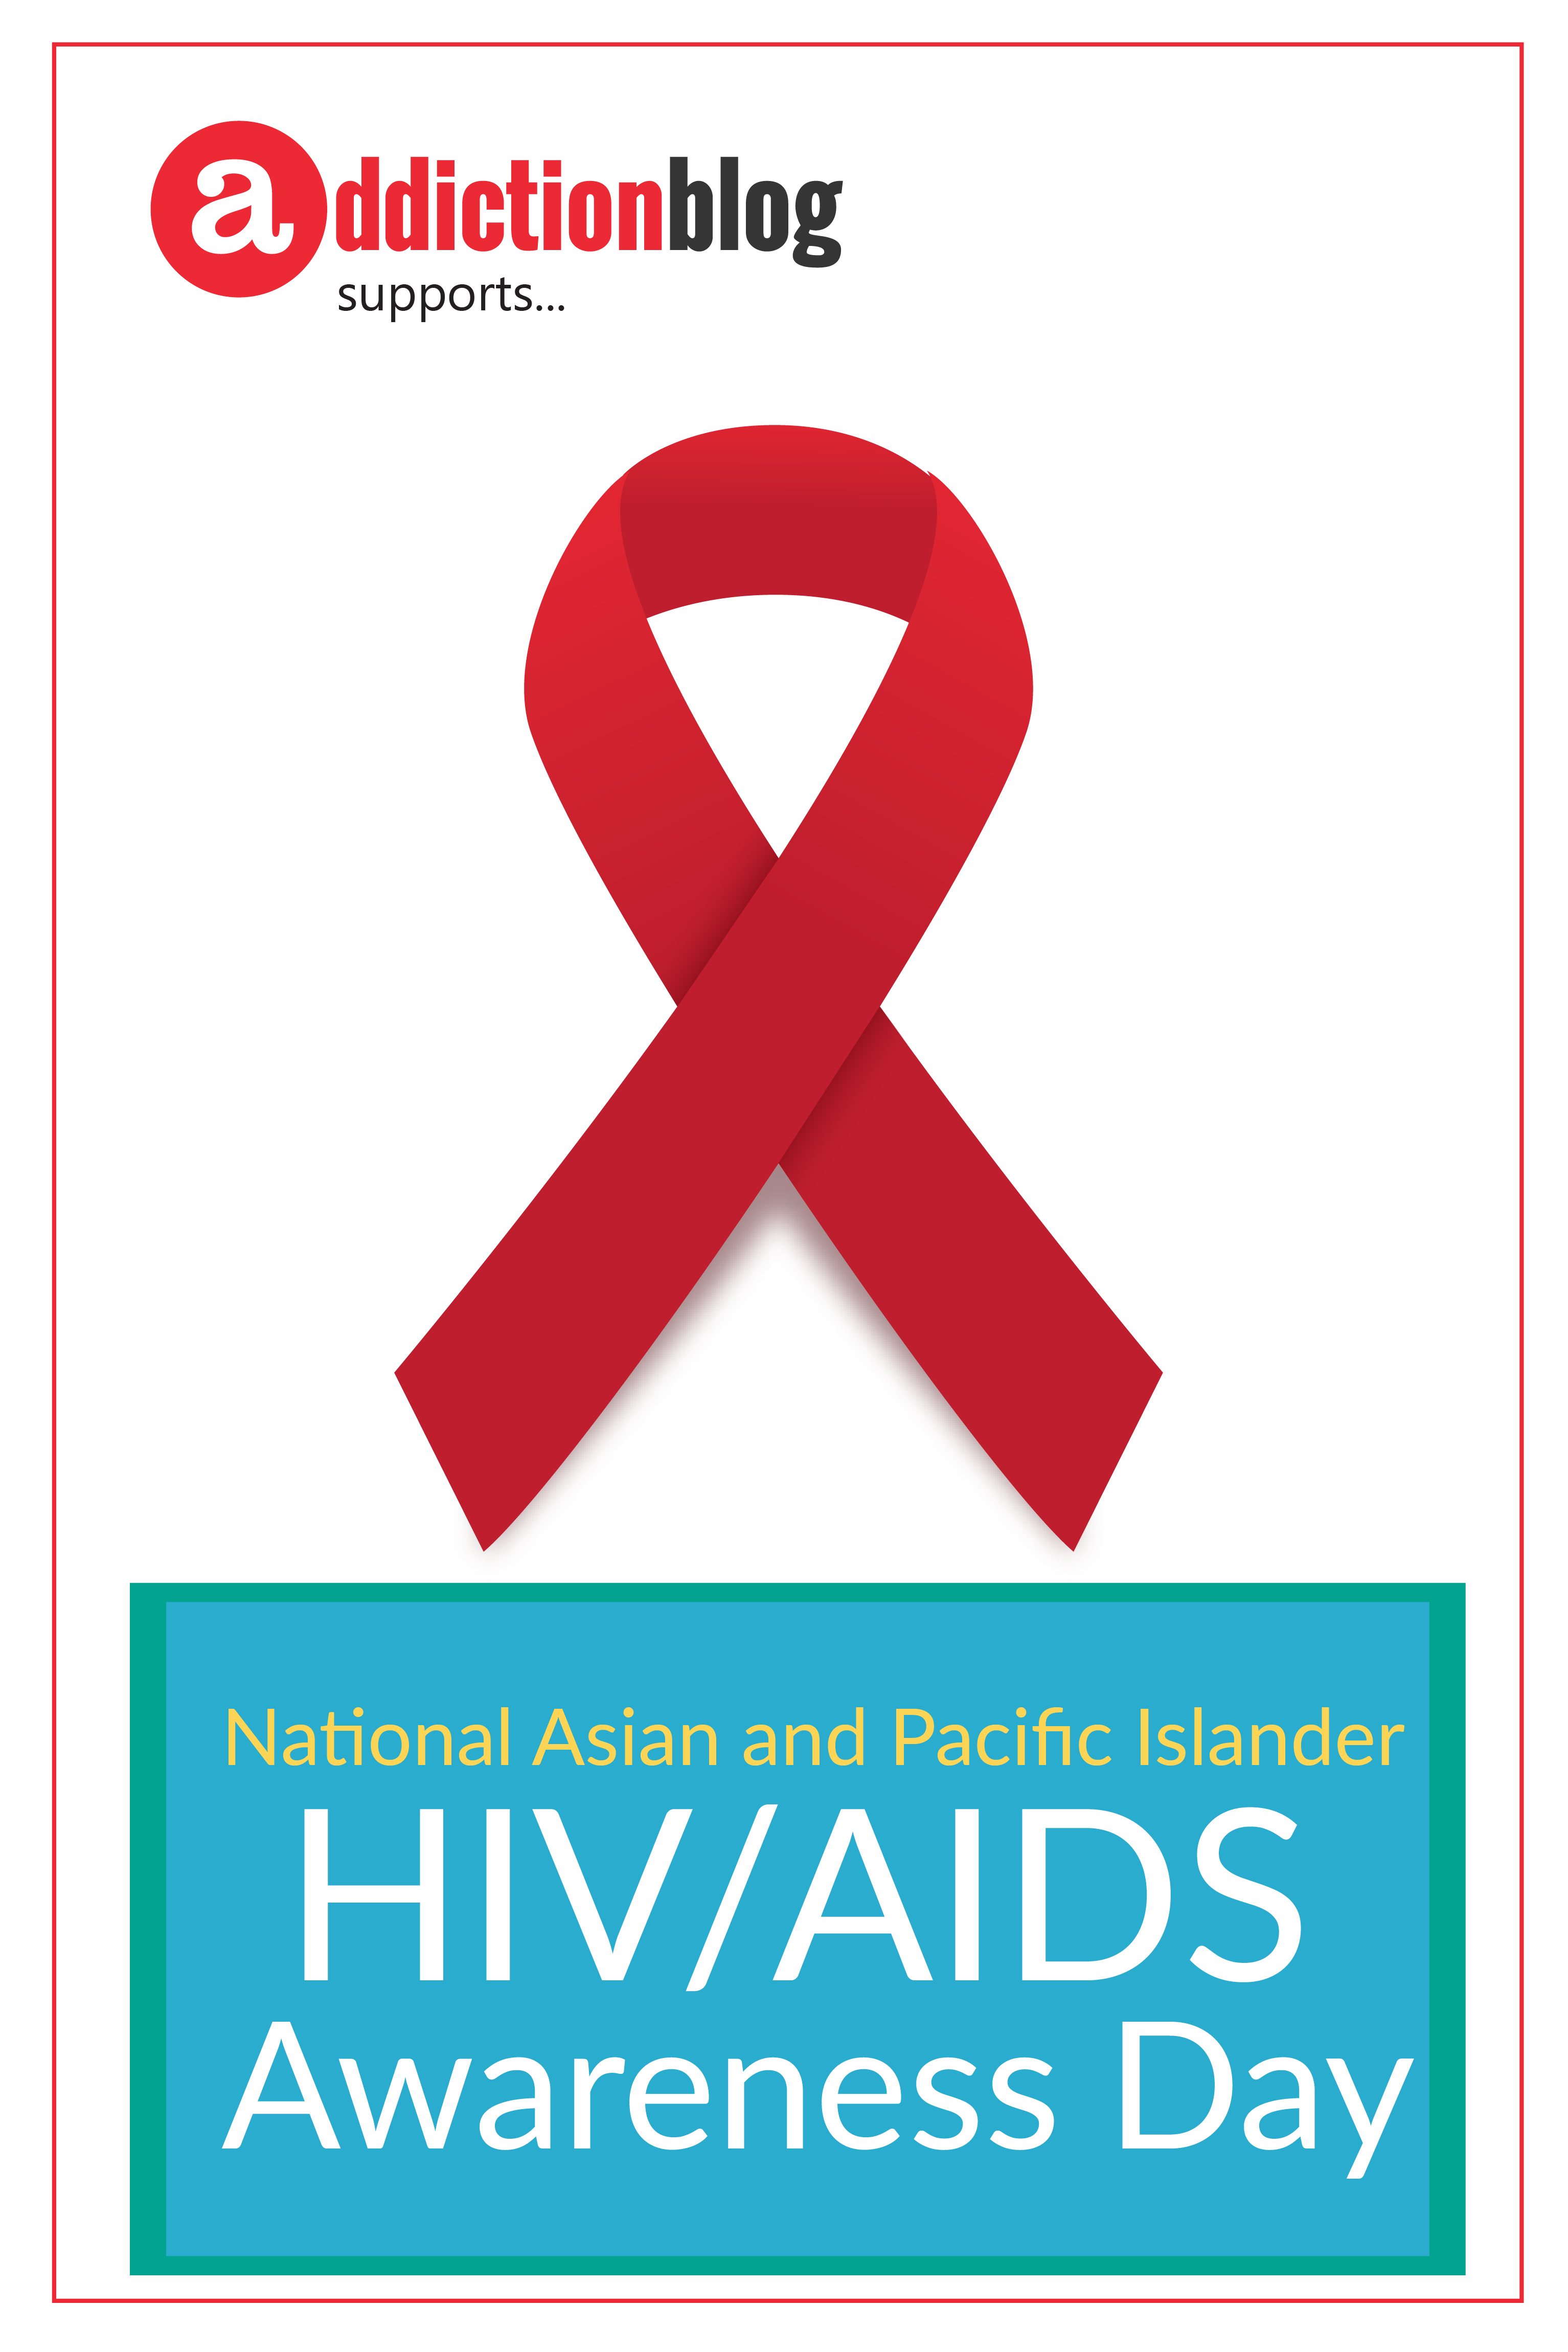 Today, we support National Asian and Pacific Islander HIV/AIDS Awareness  Day! Stop the stigma! 'a' is for Addiction| Addiction Blog